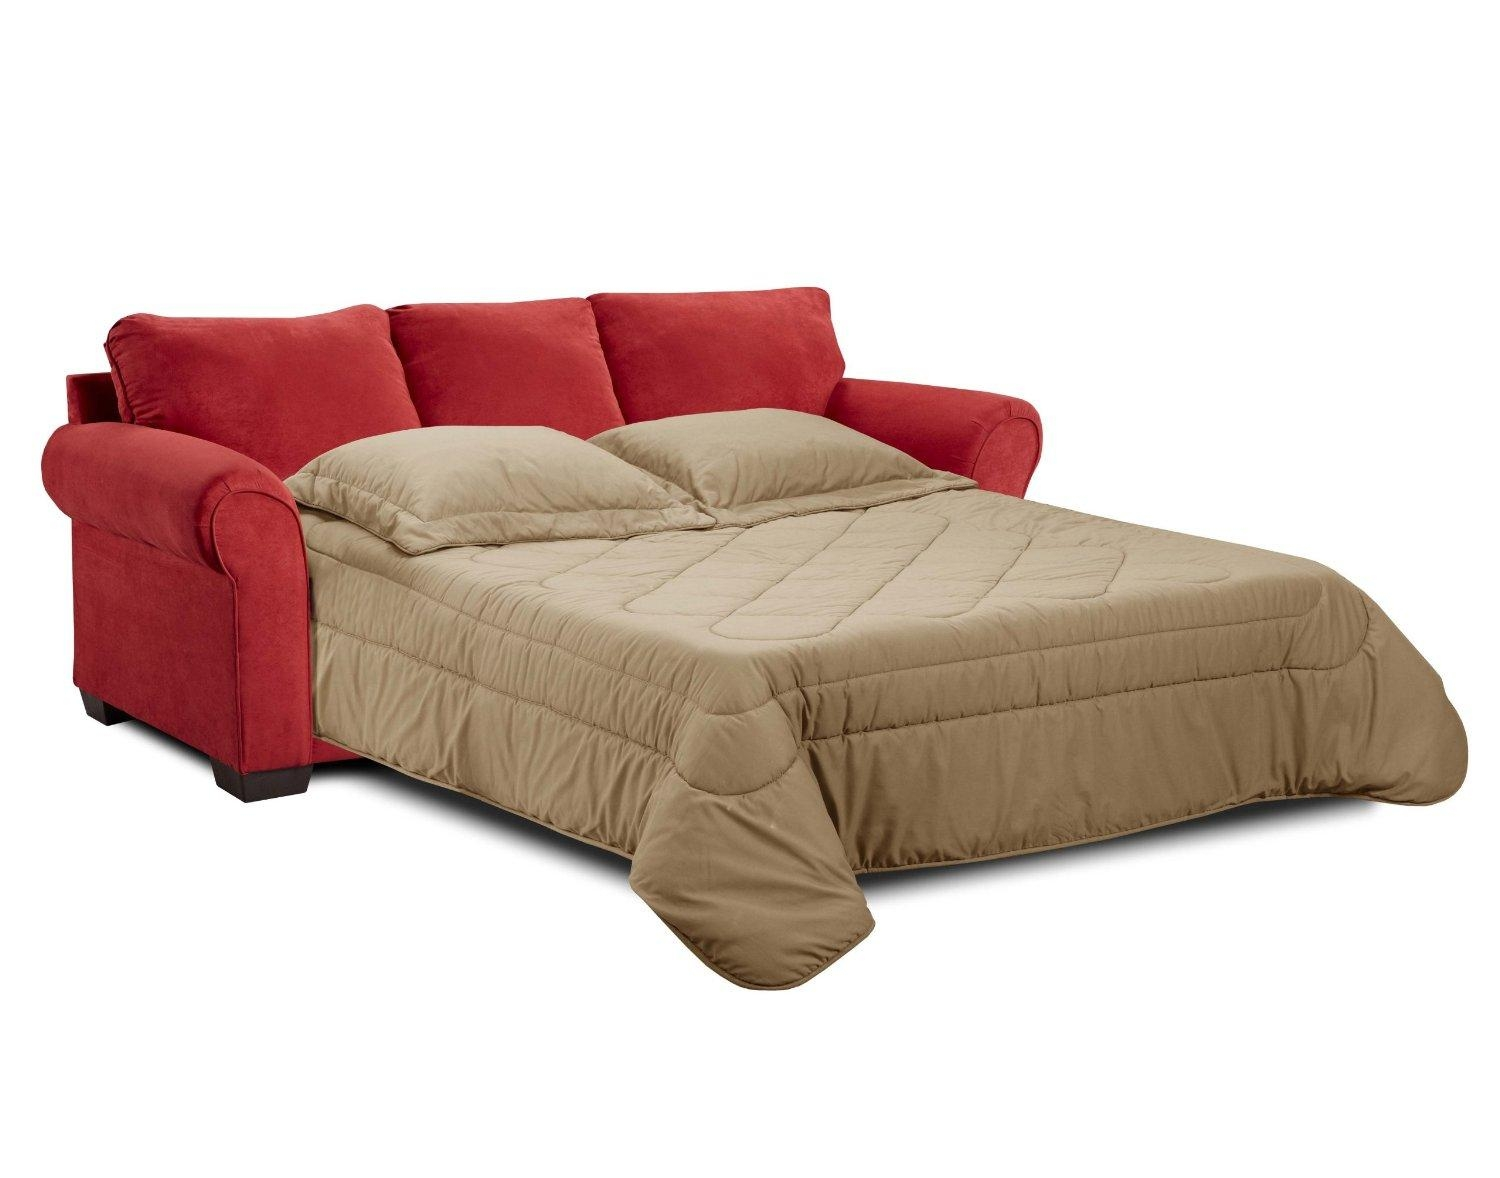 Sofas Center : Queen Size Sofa Sleeper Mattress Covers For Beds With Sheets For Sofa Beds Mattress (View 16 of 20)